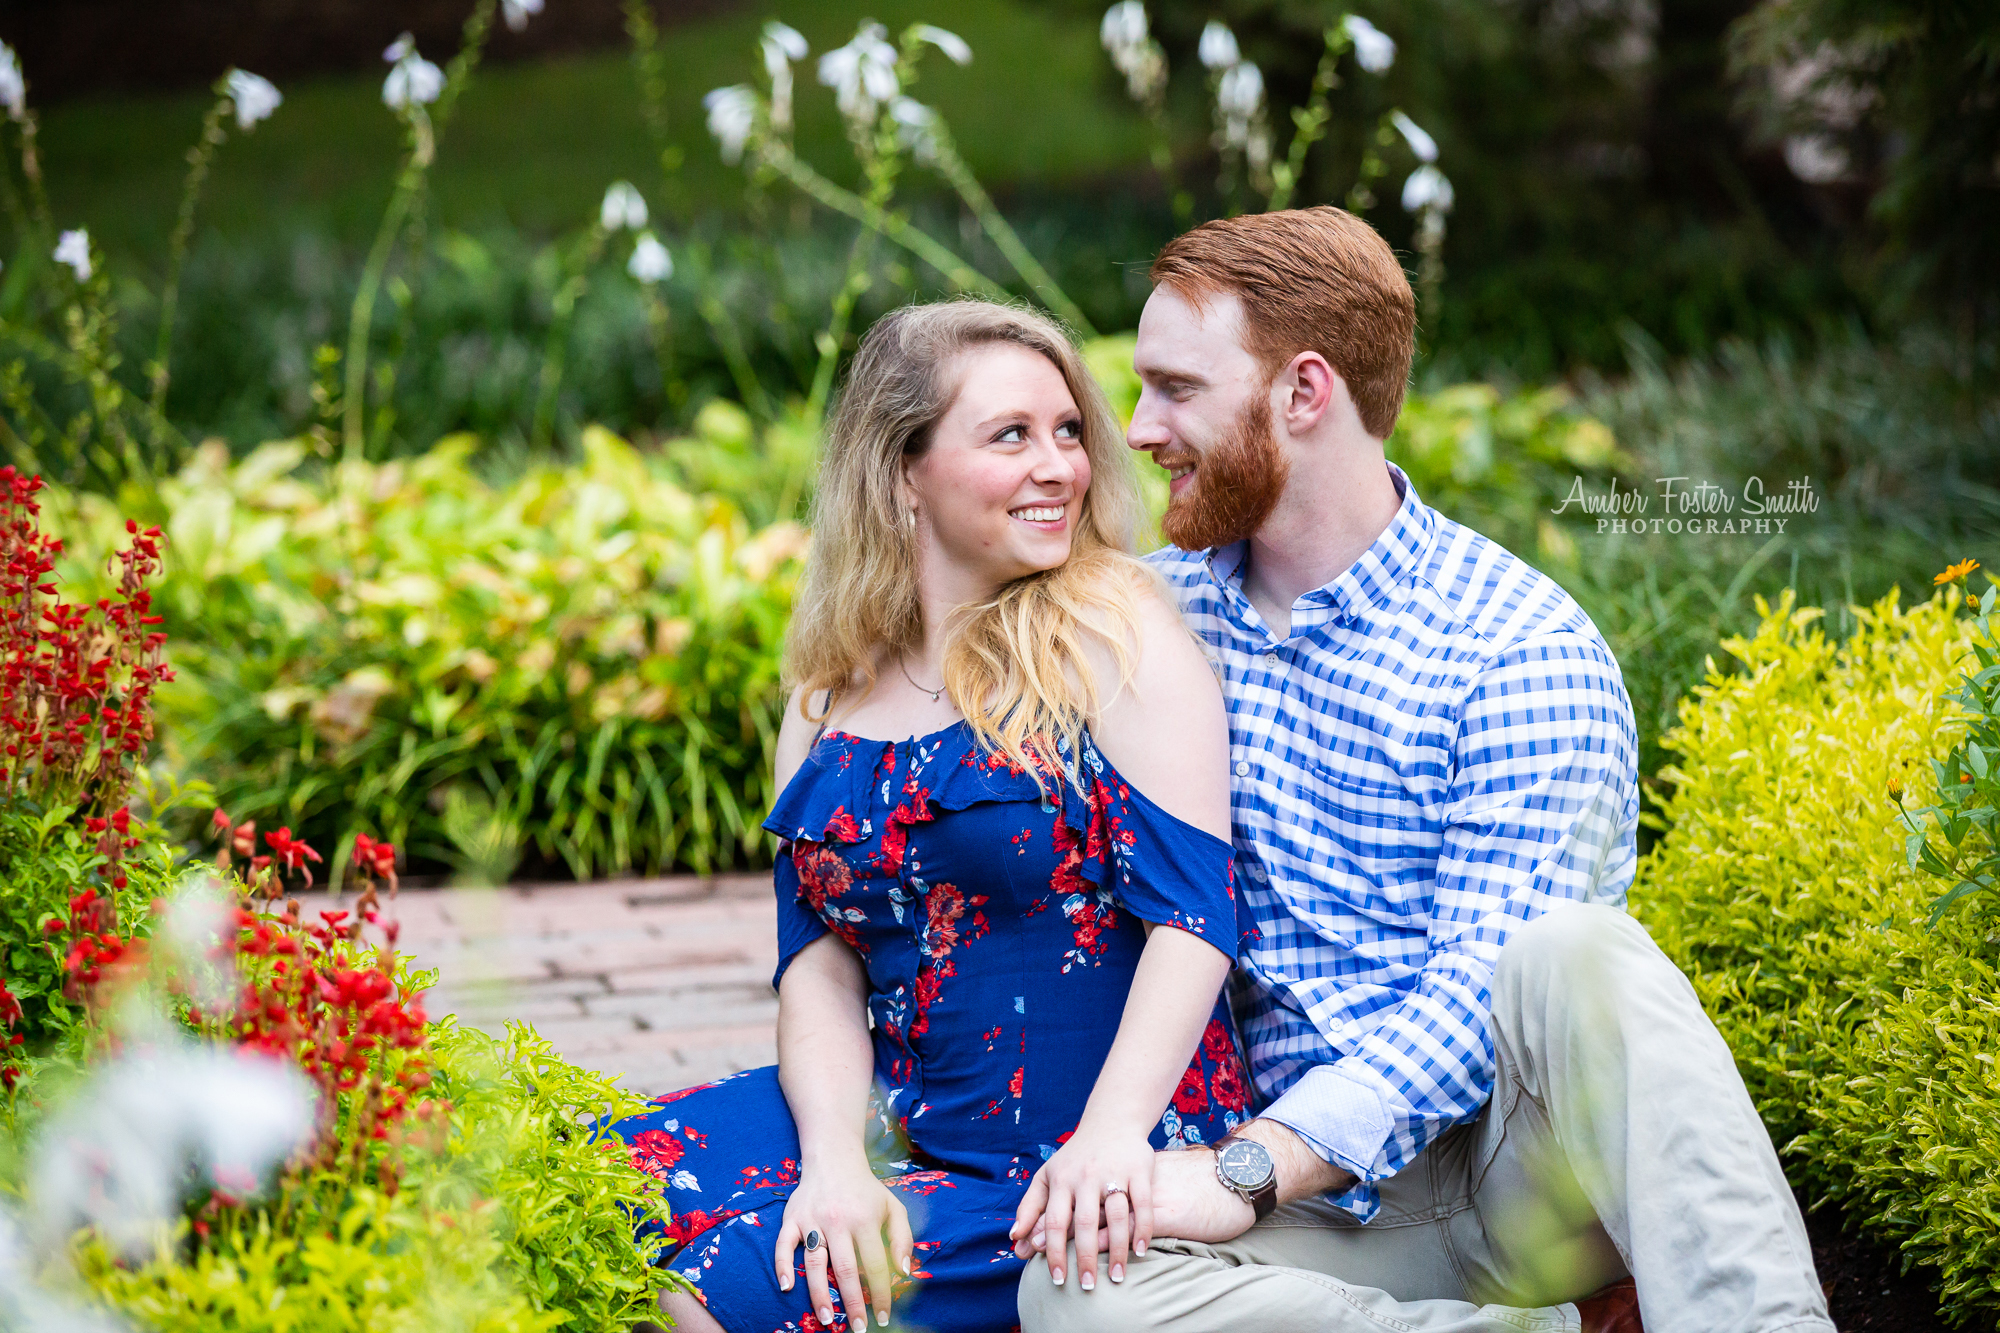 Amber Foster Smith Photography - Holly Springs, NC | Holly Springs Engagement and Wedding Photography